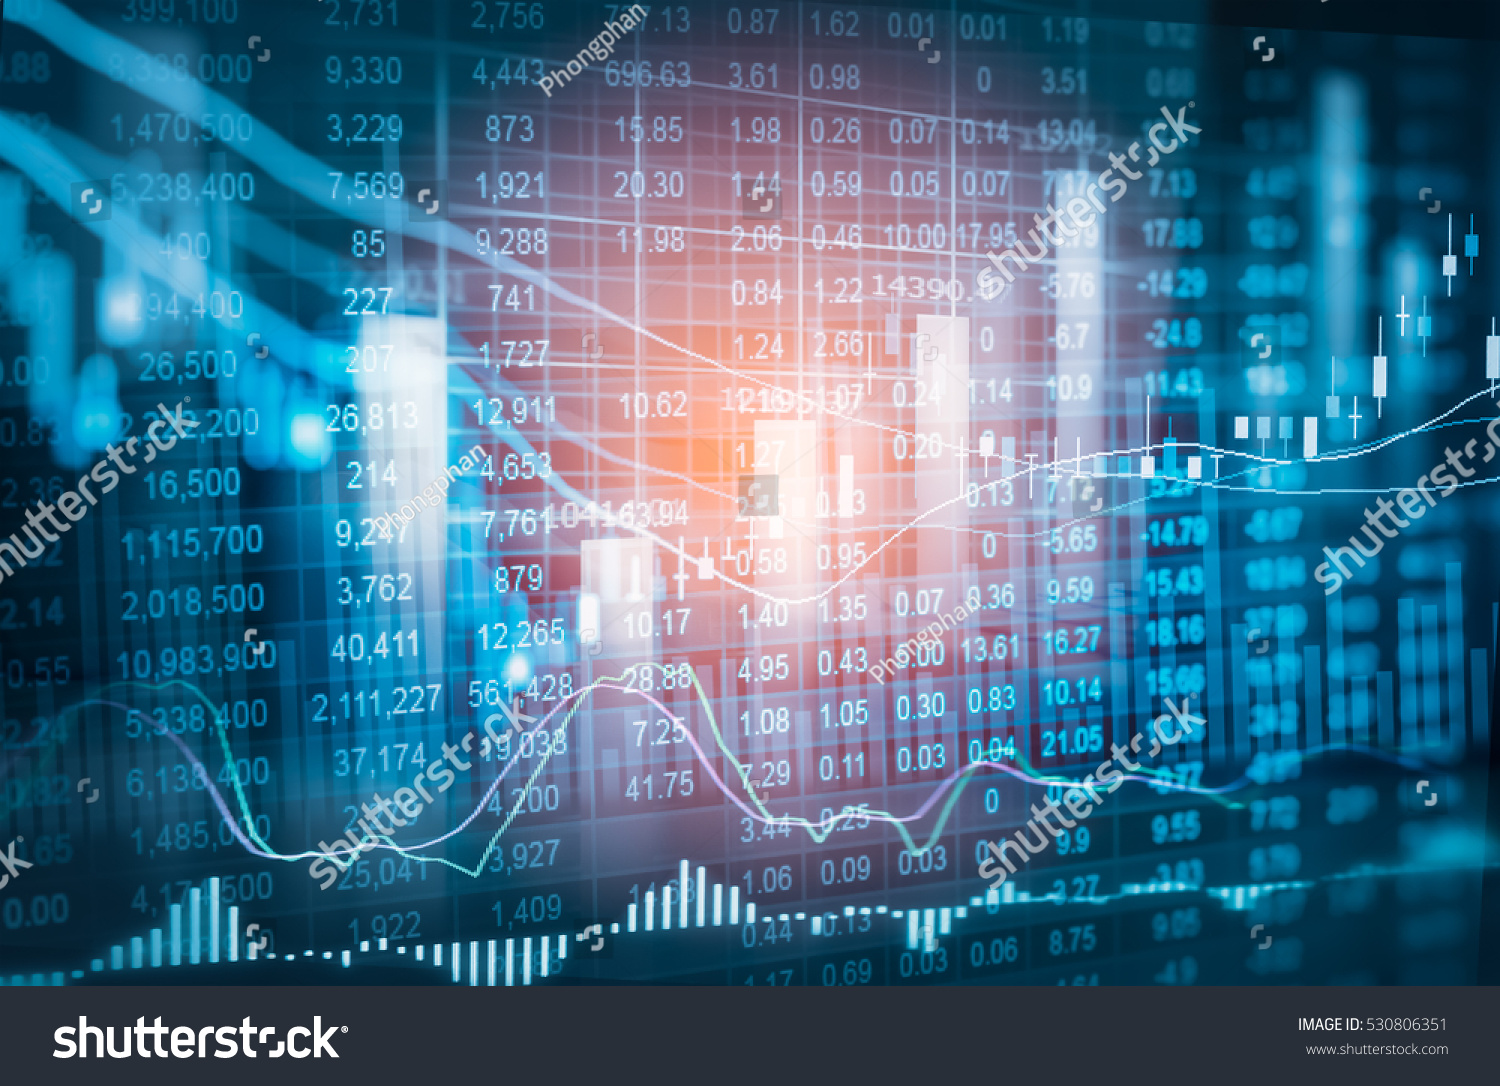 abstract of investment analysis Abstract a city plays a central role in the processes of economic, social, and environmental development, becoming the core of policy makers' strategies.